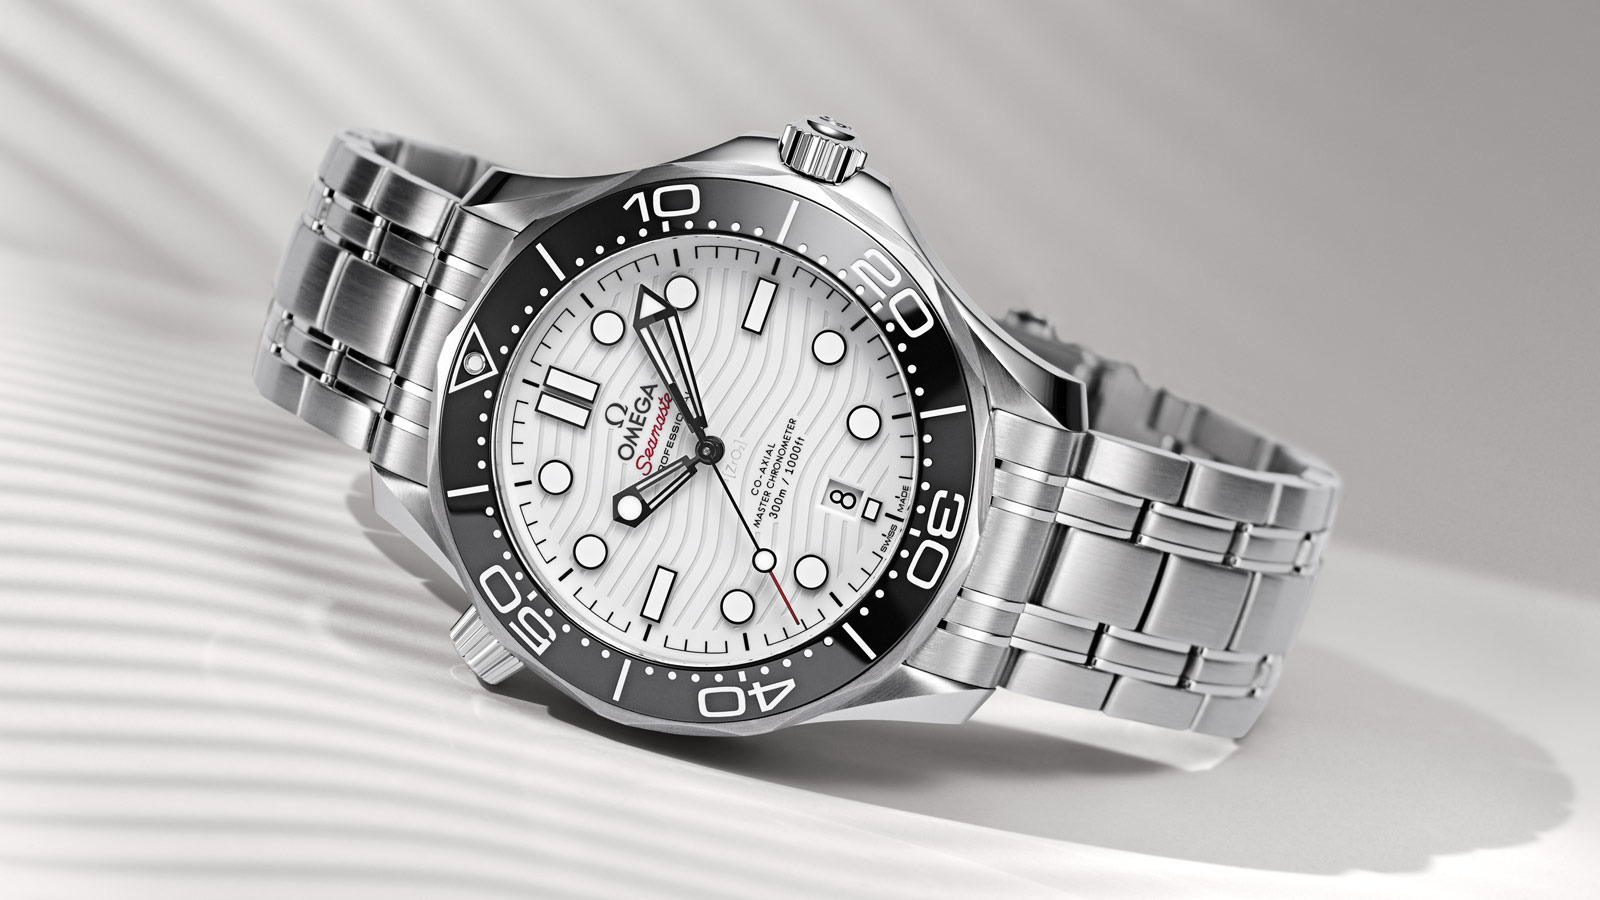 Seamaster Diver 300 M Diver 300M Omega Co‑Axial Master Chronometer 42 mm - 210.30.42.20.04.001 - View 1